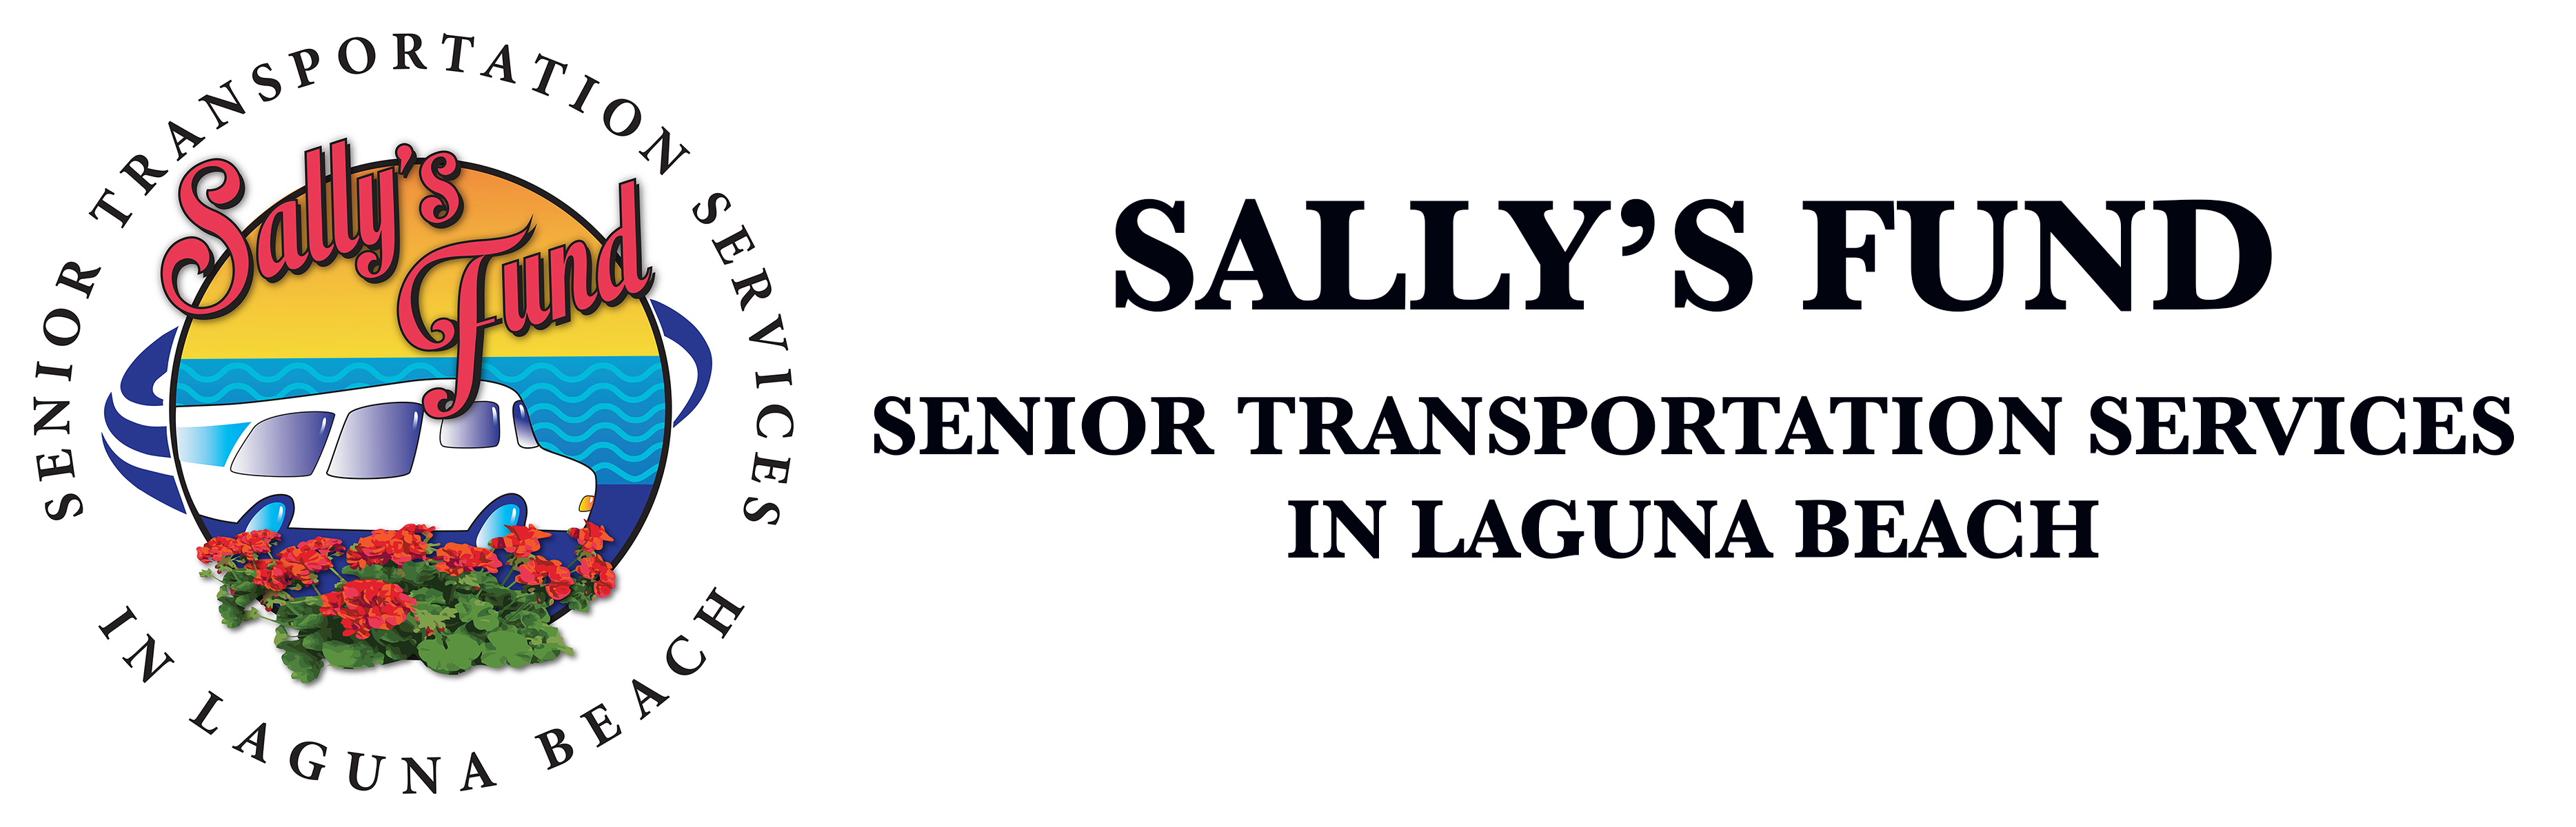 Sally's Fund